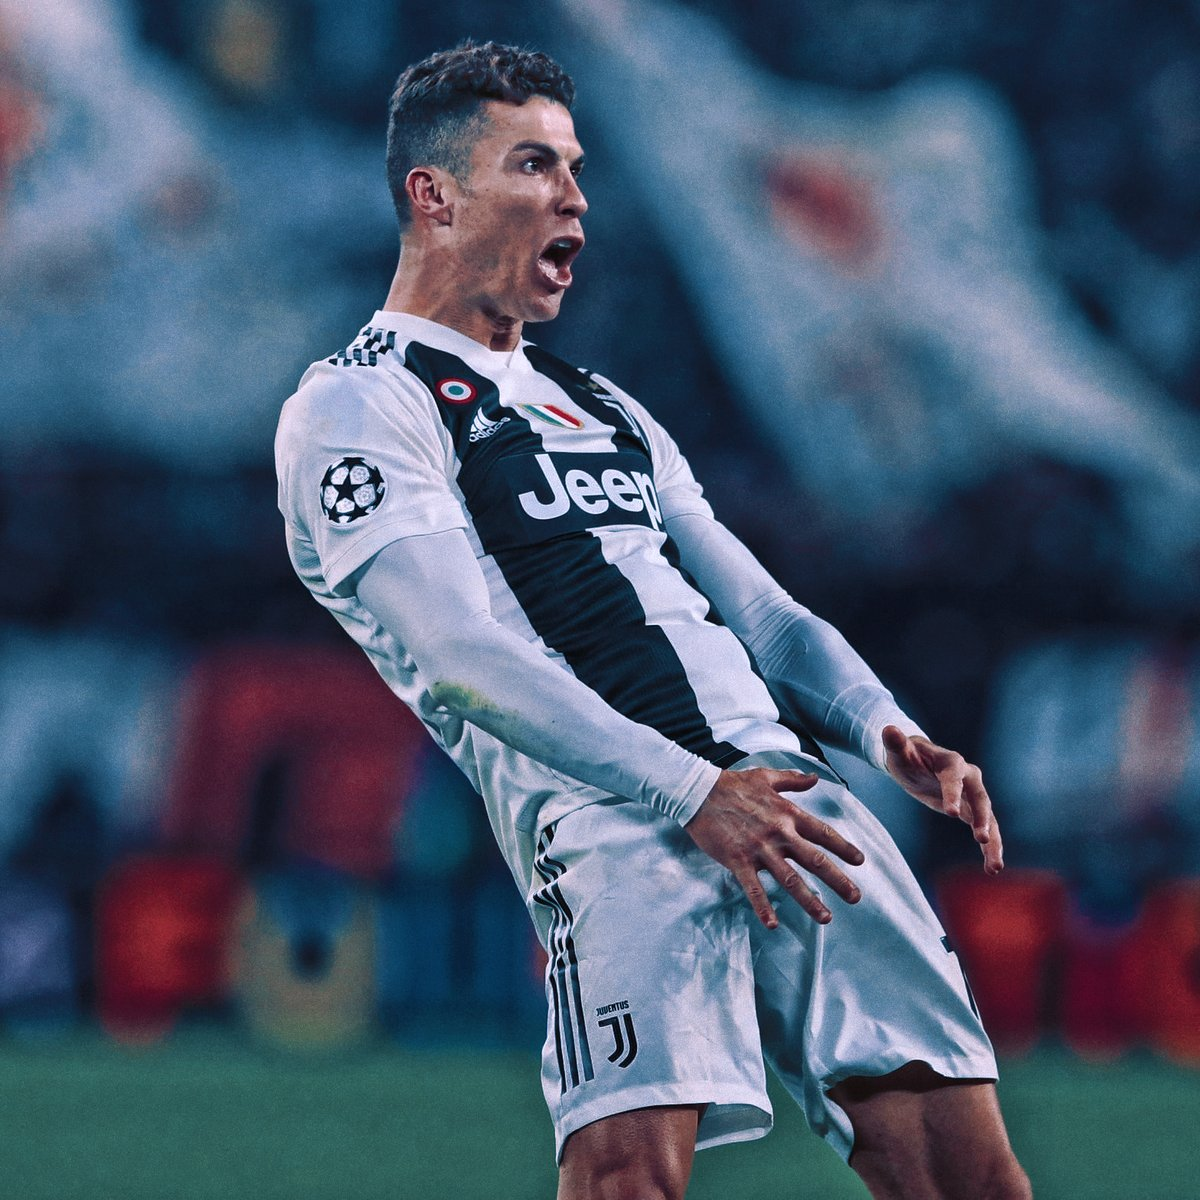 Cristiano Ronaldo is the player with the most :  UCL Final Goals UCL Semi Final Goals UCL Quarter Final Goals   🐐. https://t.co/m3RCT5IpK0